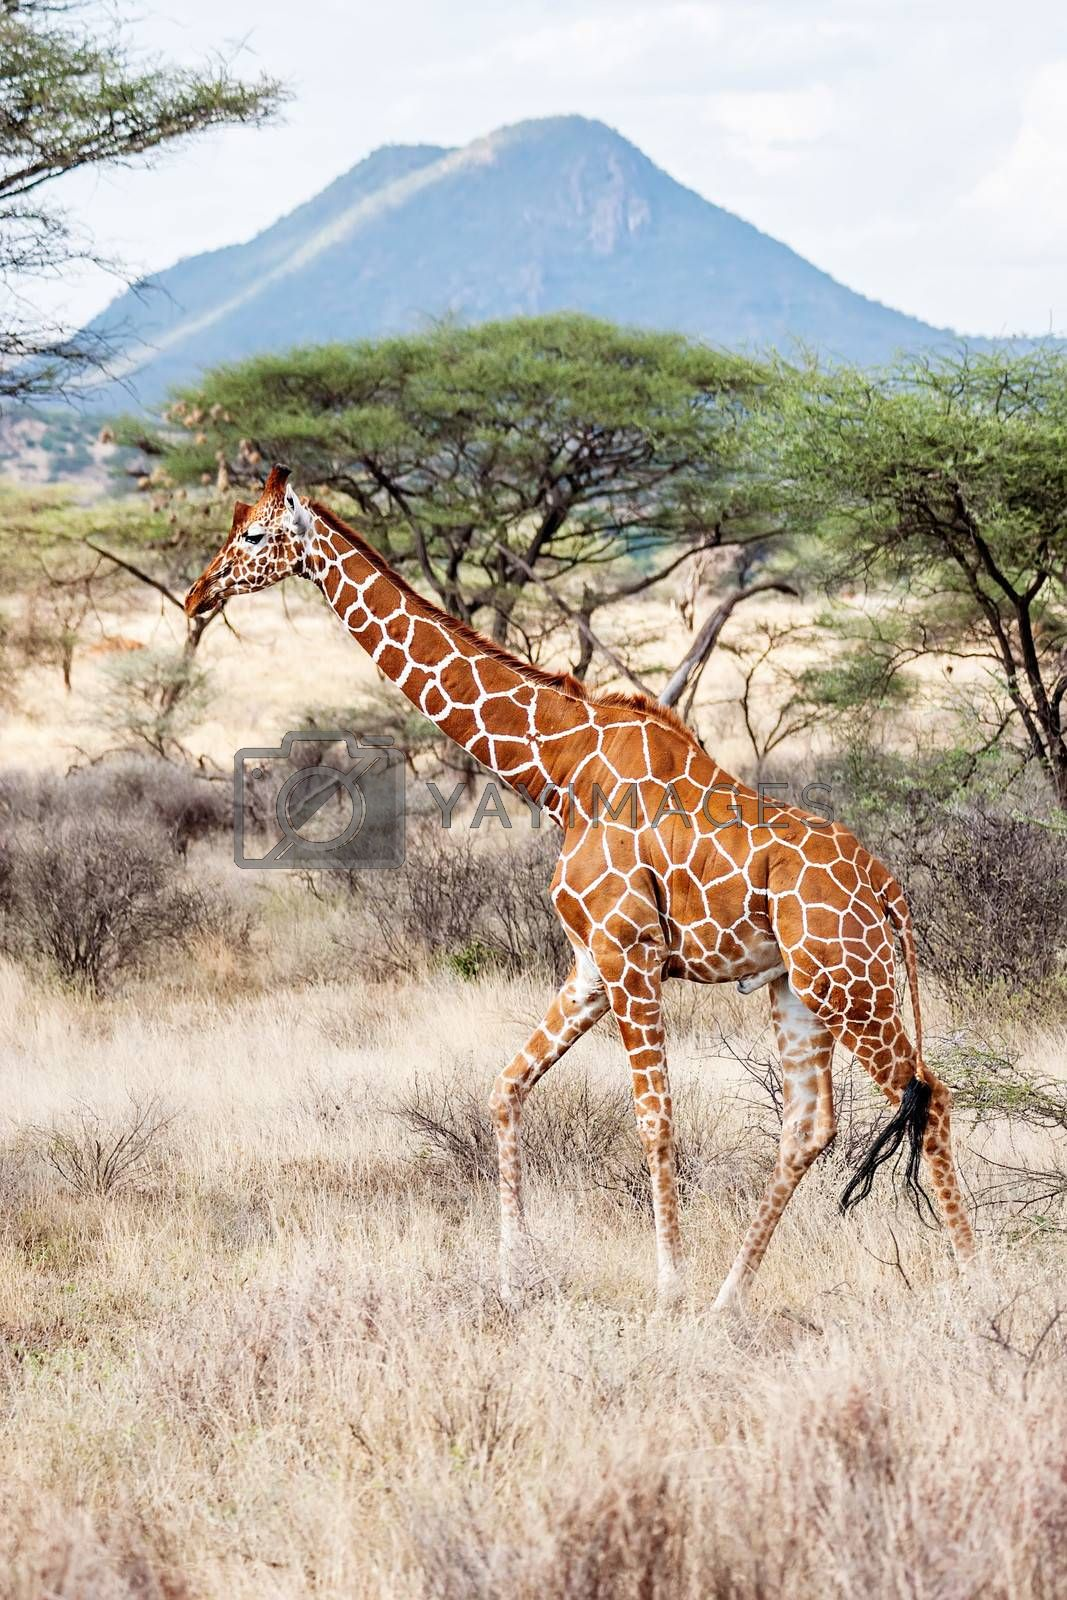 Royalty free image of Reticulated Giraffe walking in the Savannah by ajn